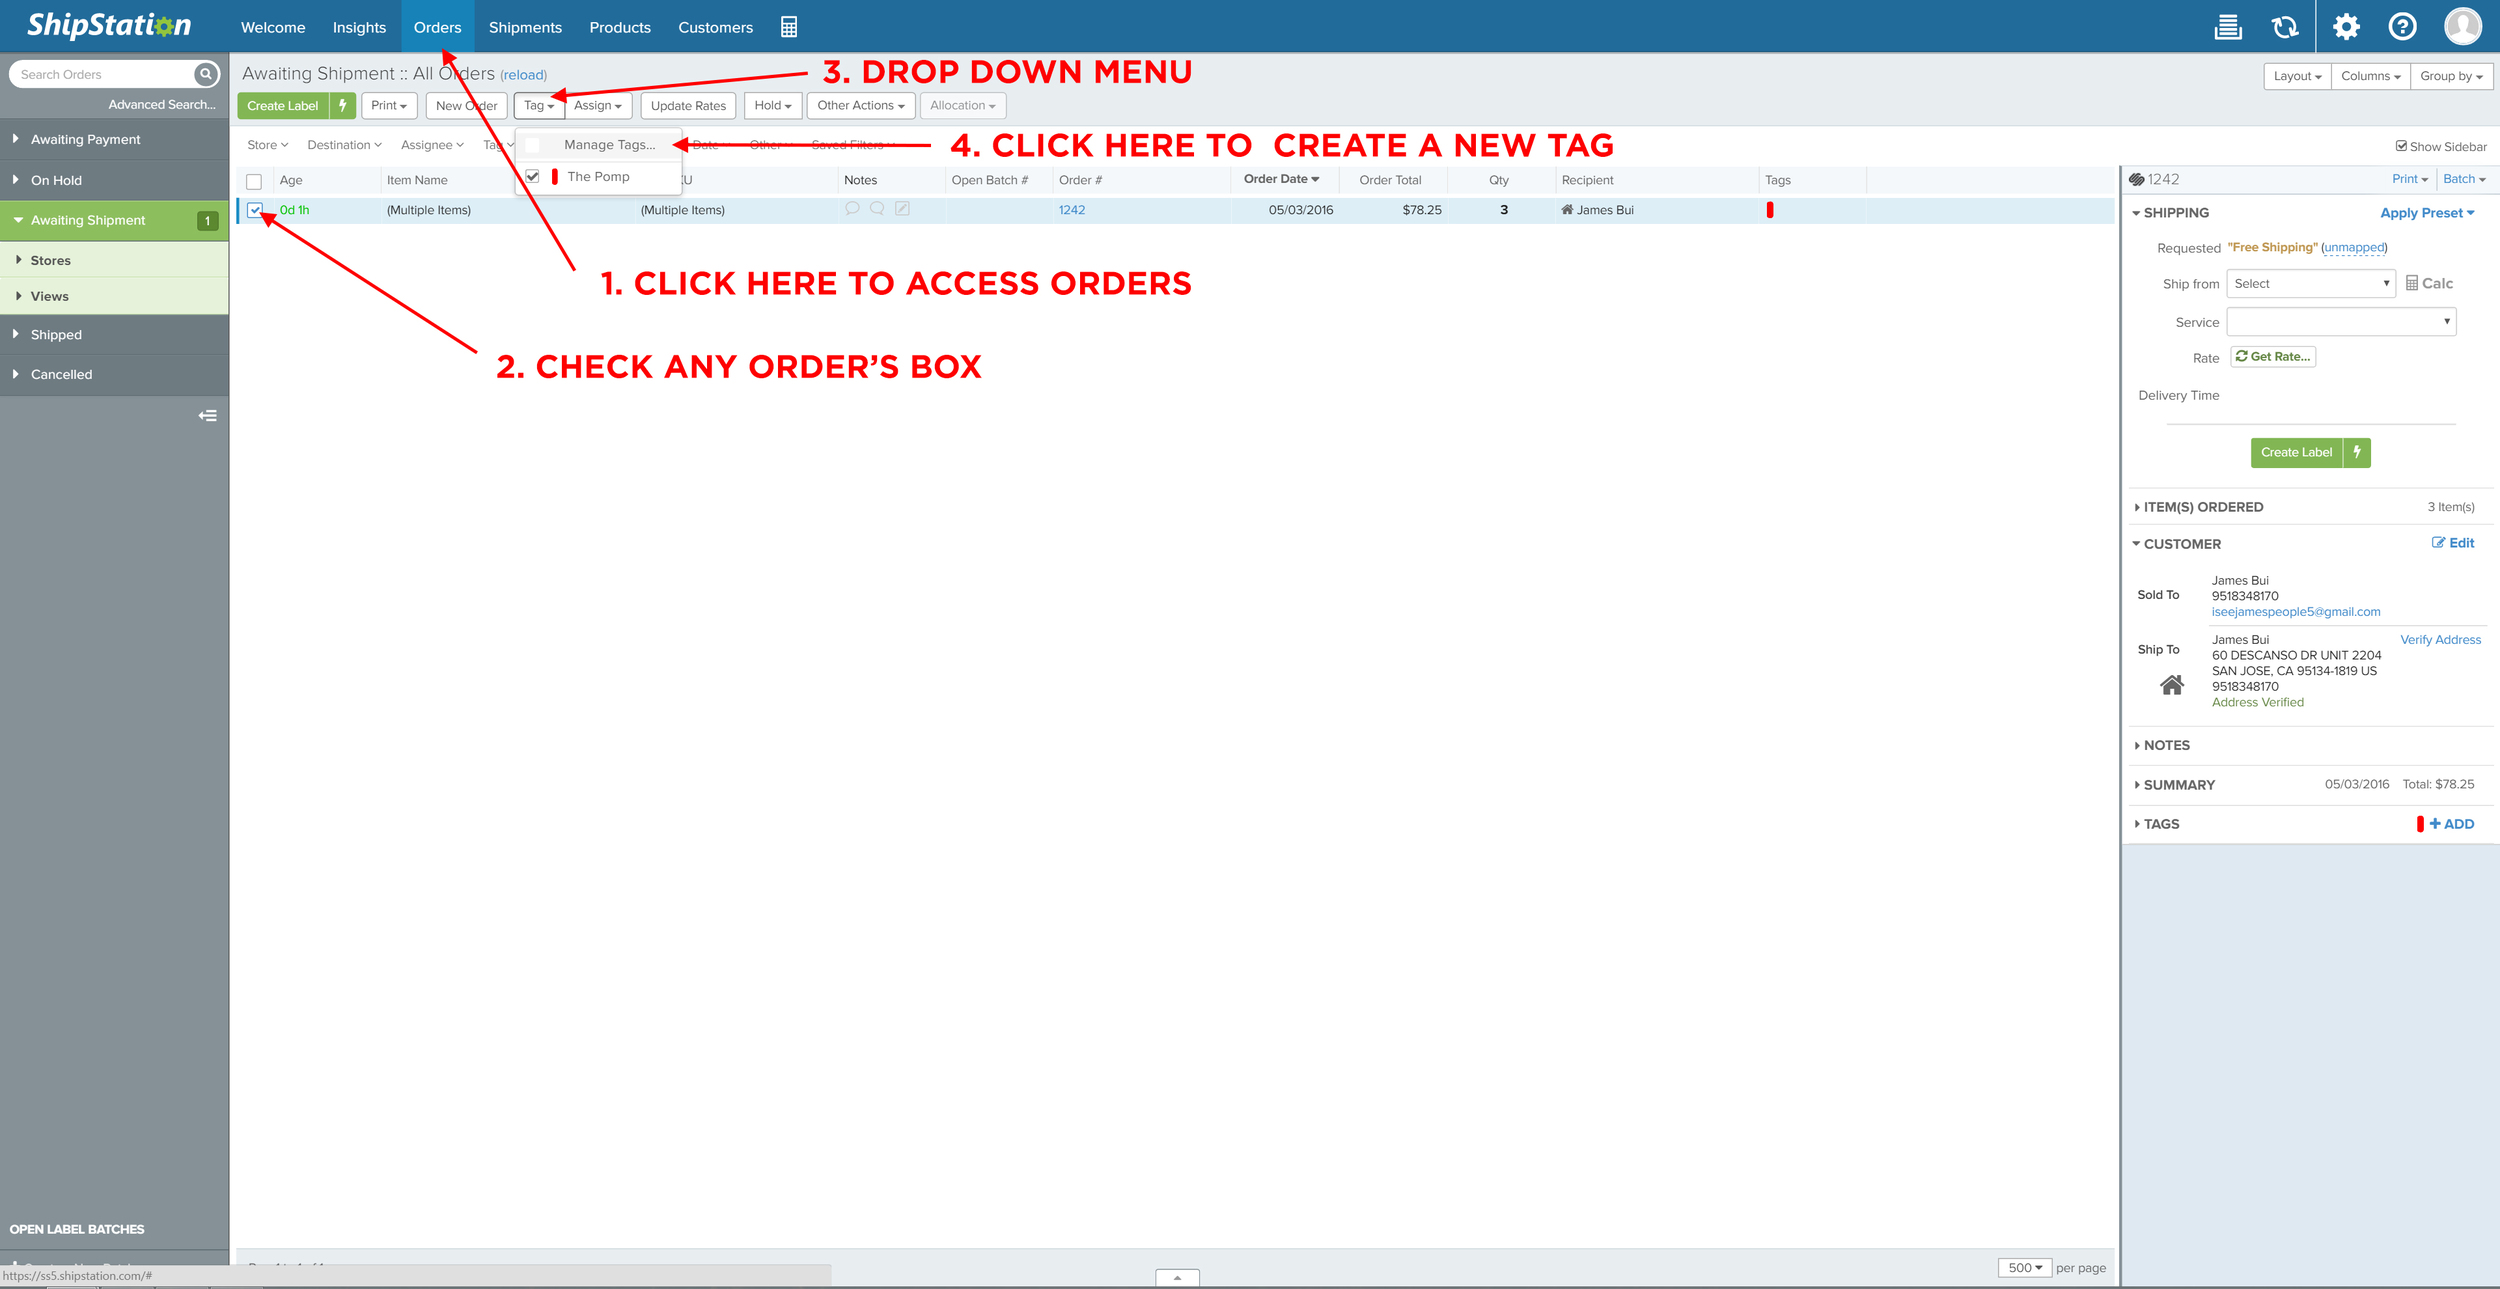 Creating a new colored tag to designate shared orders of multiple line items.